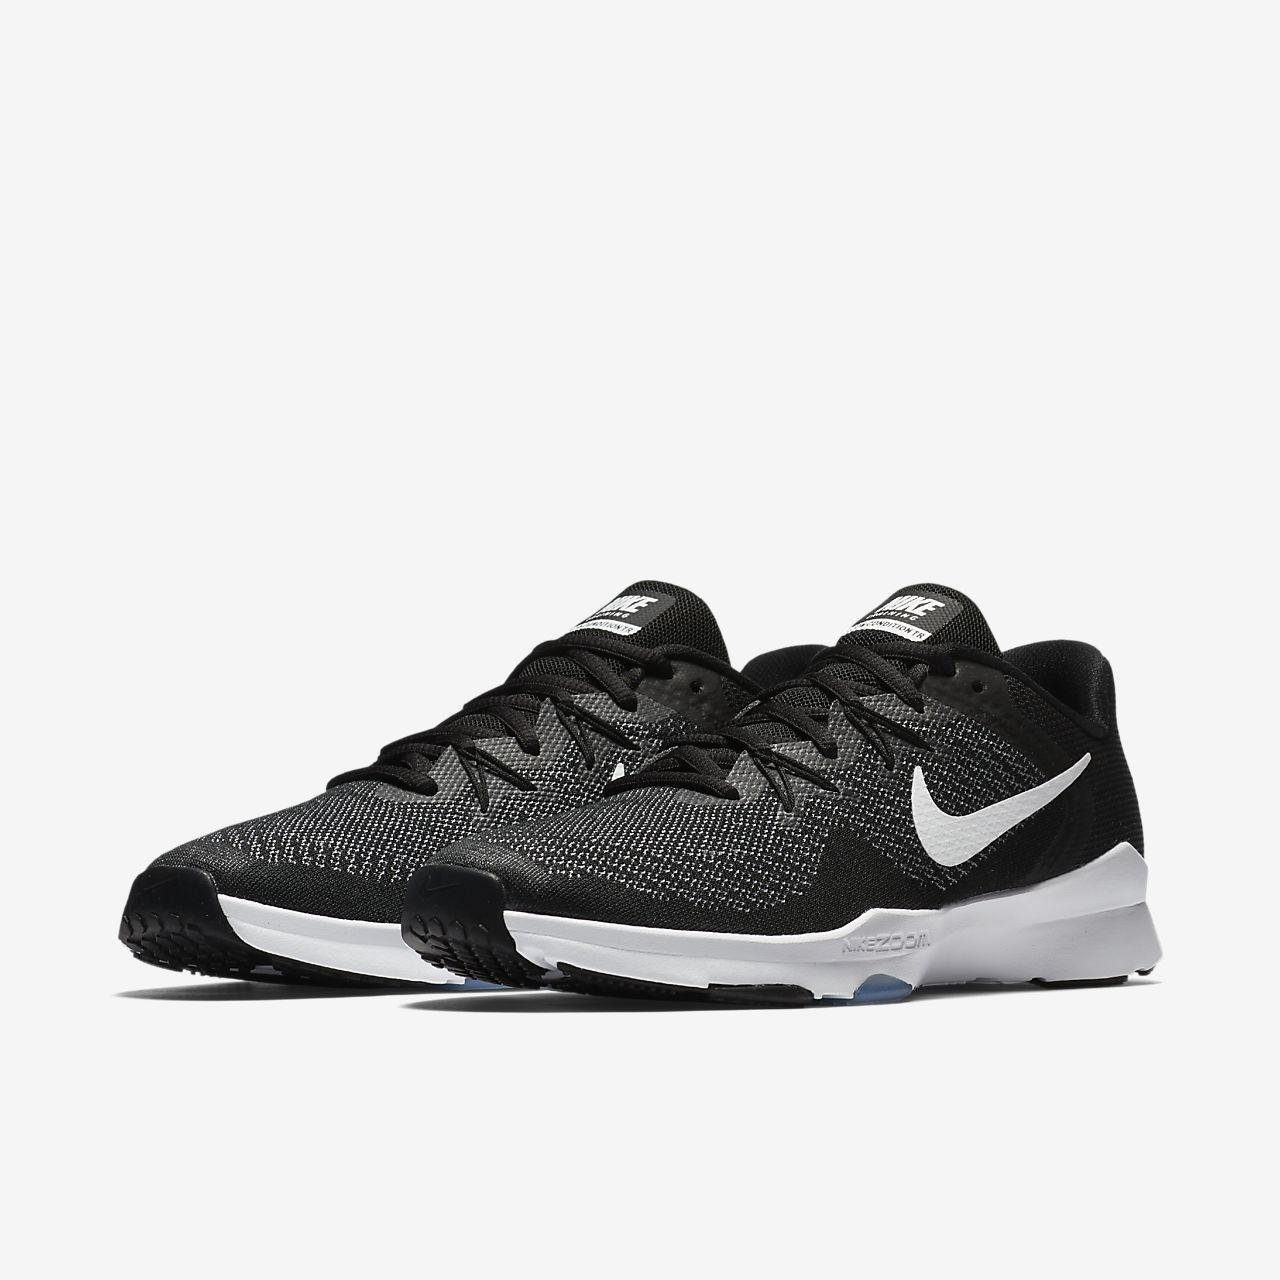 058dc9ded6f4 Nike Training Zoom Condition Tr